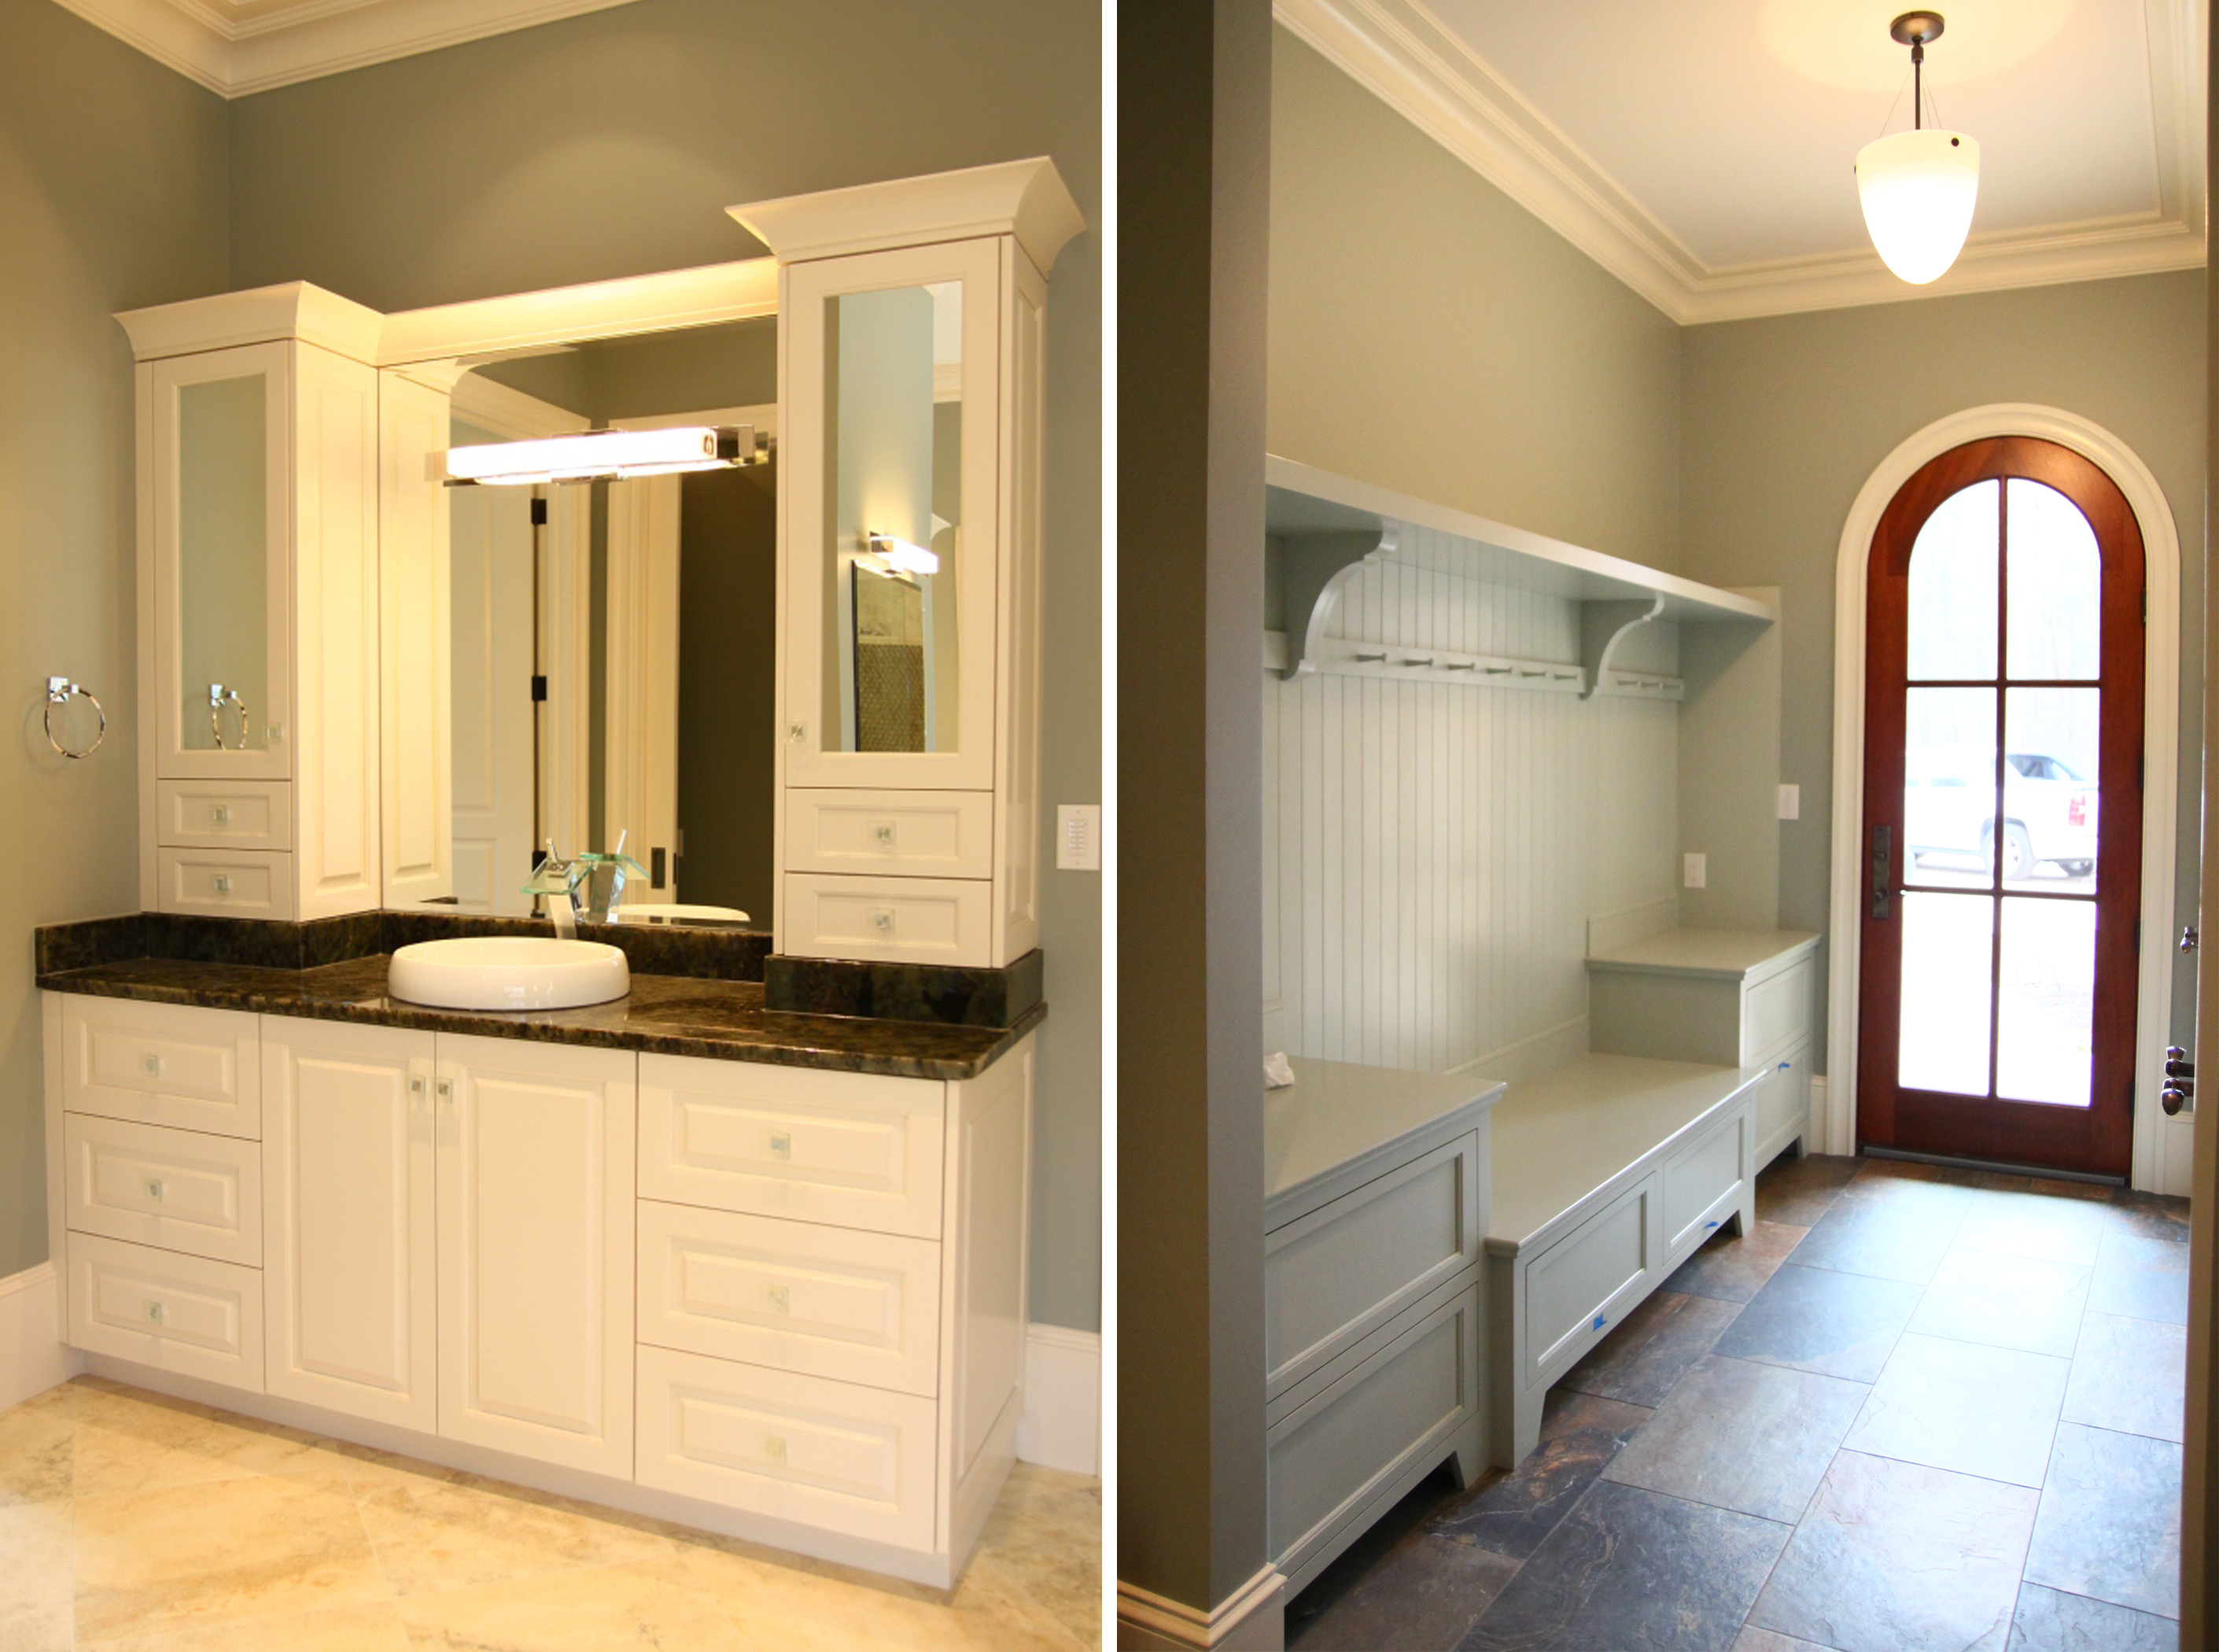 Design lines blog cabinetry cary home bathroom vanity and for Hall bathroom ideas